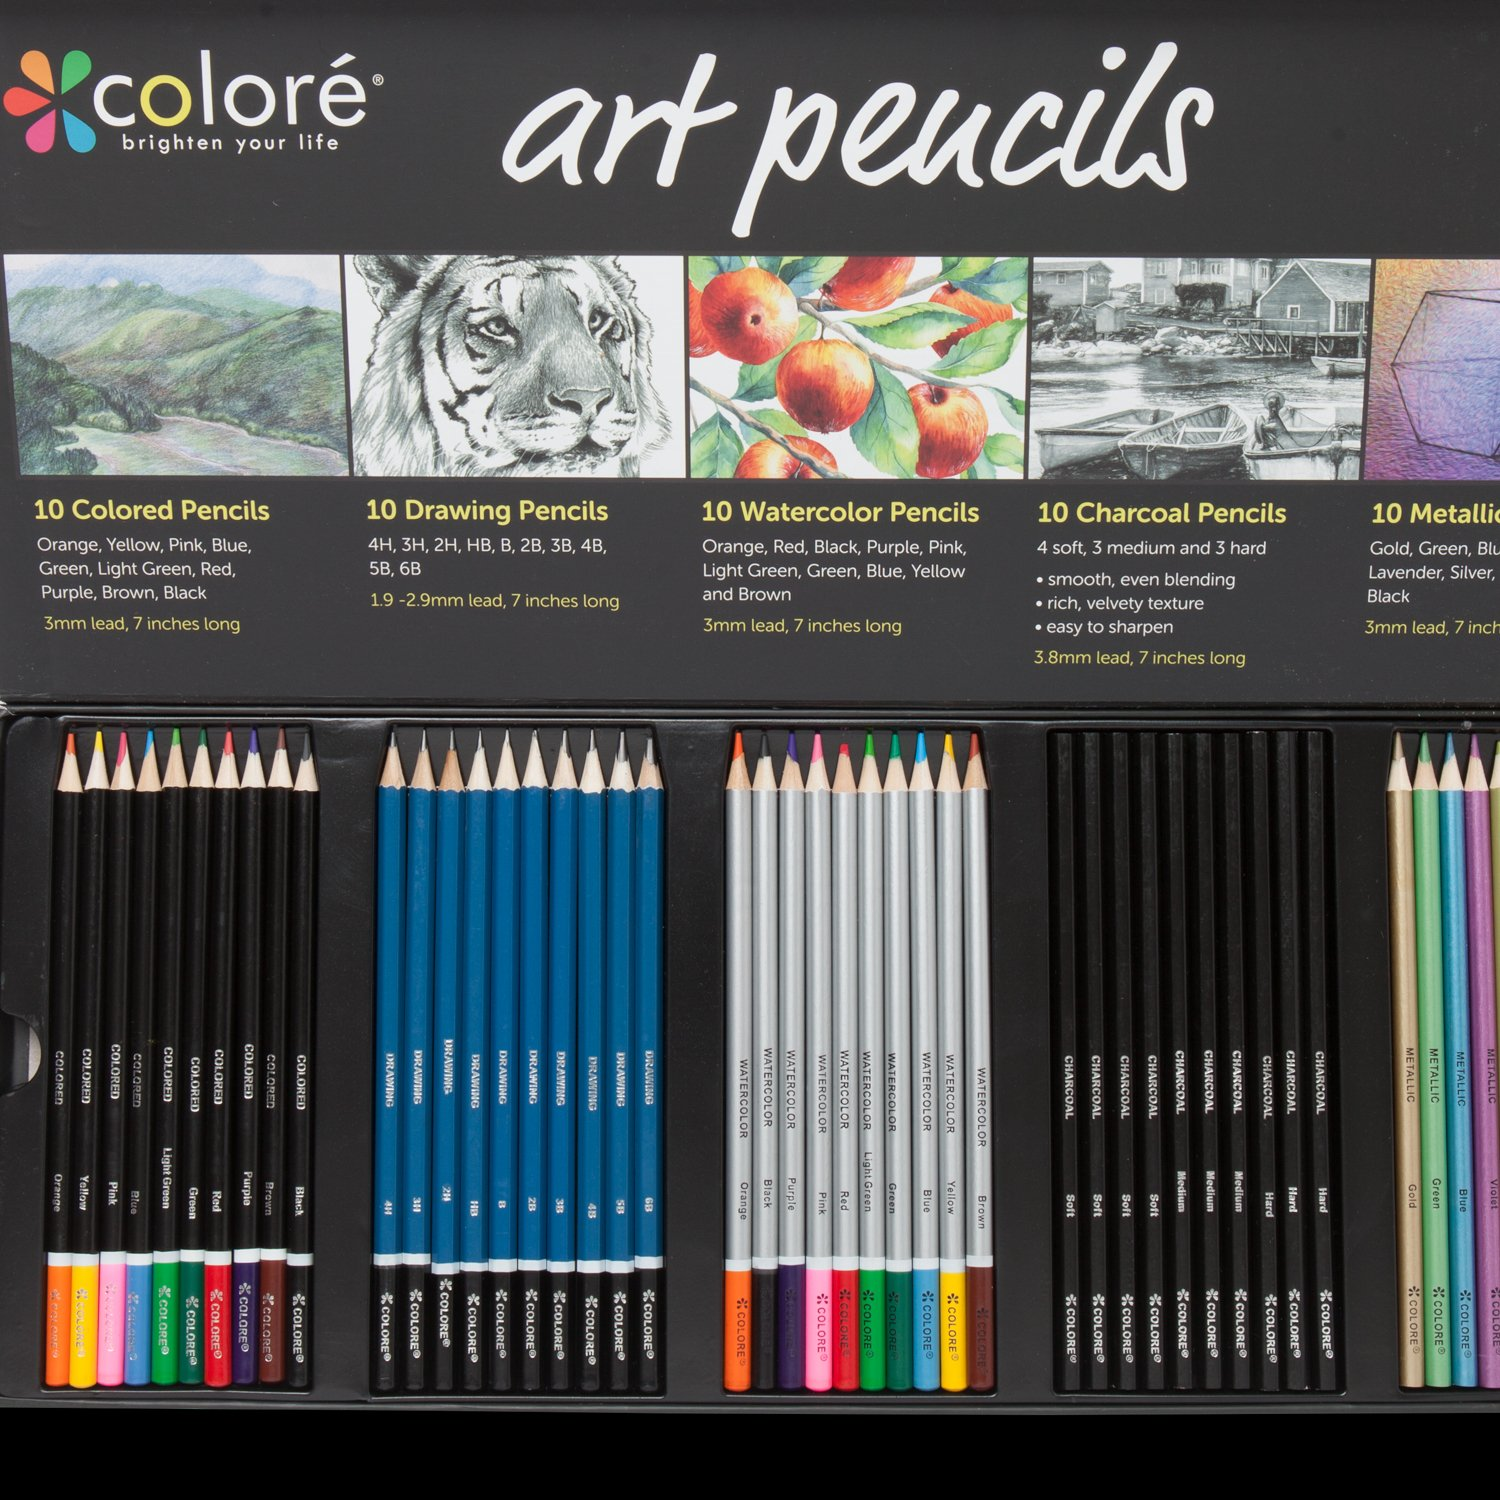 Colore Premium Art Pencils Pack - 50 Assorted Pencil Set for Coloring Pages & Books - Colored, Watercolor, Drawing, Charcoal and Metallic Color Pencils for Students, Kids & Adults School Supplies by Colore